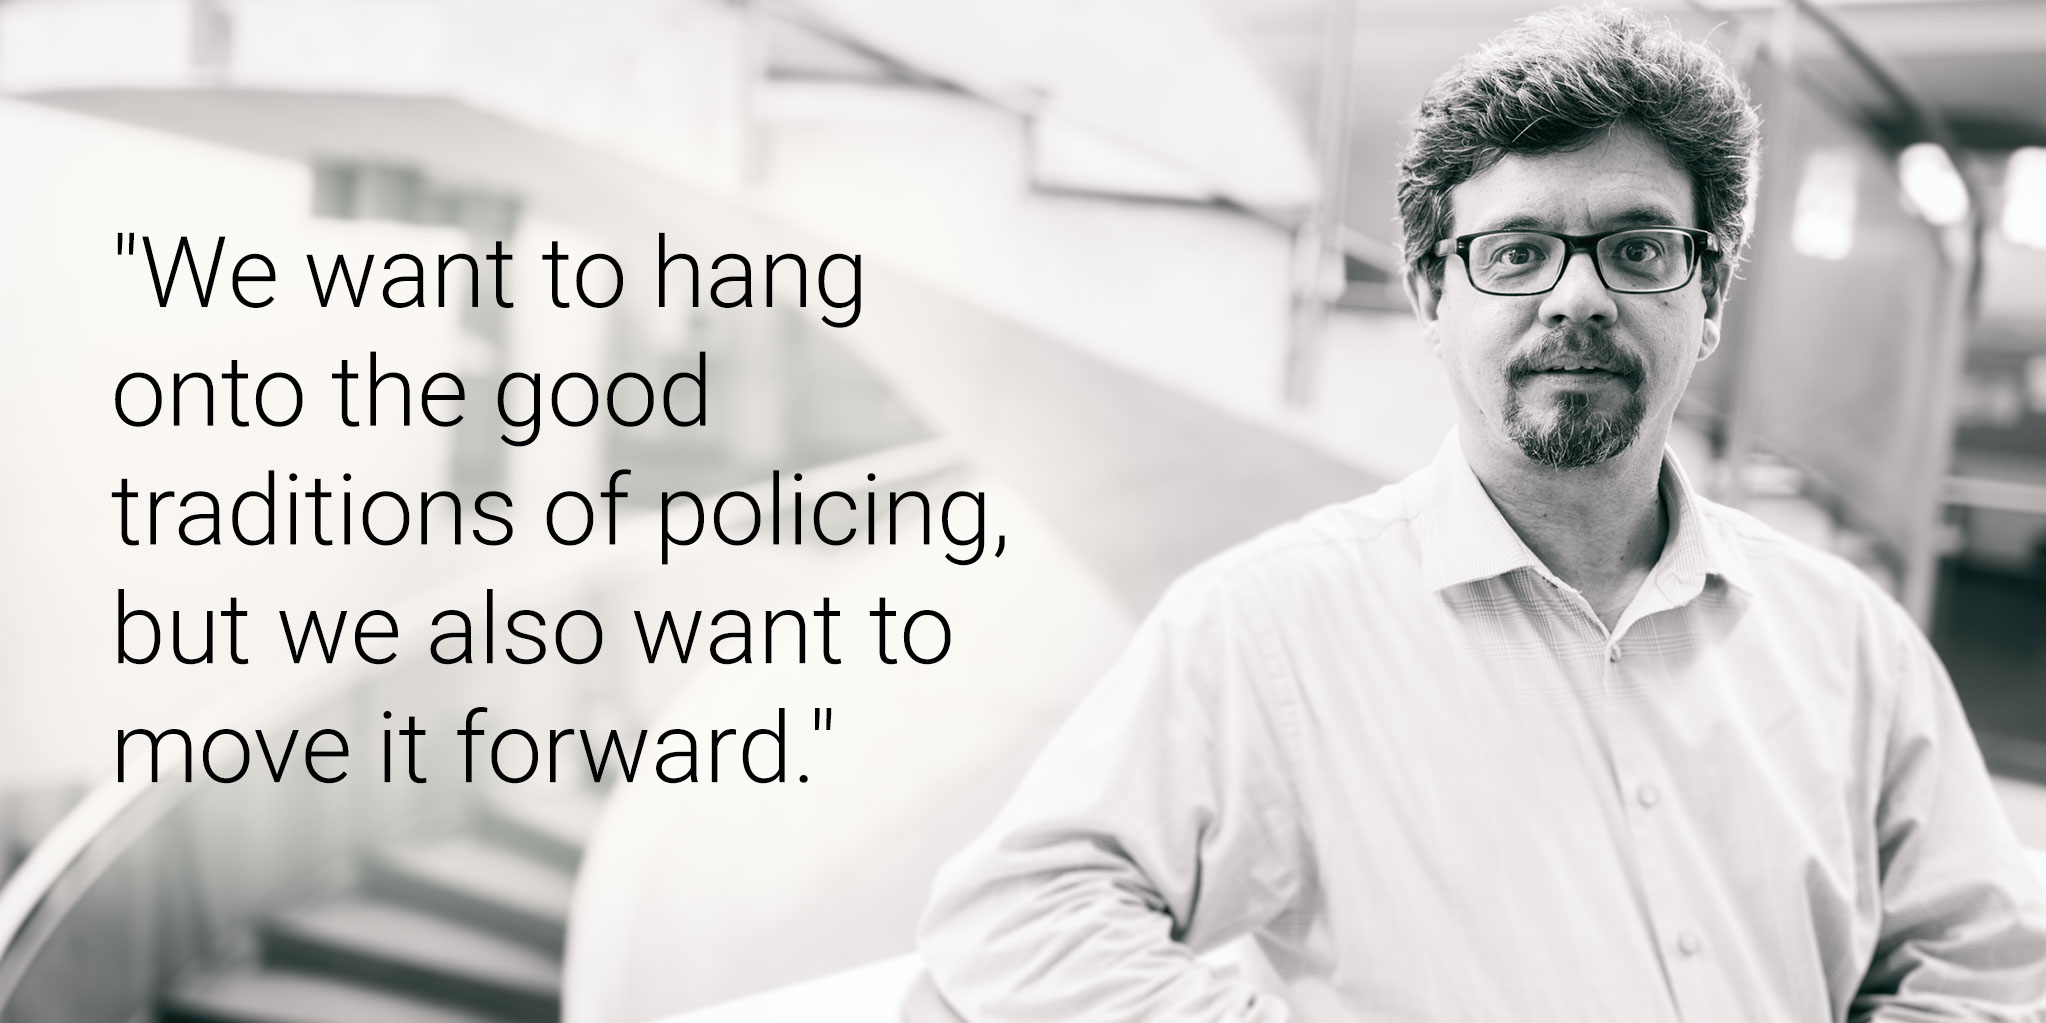 Text that reads: We want to hang onto the good traditions of policing, but we also want to move it forward.